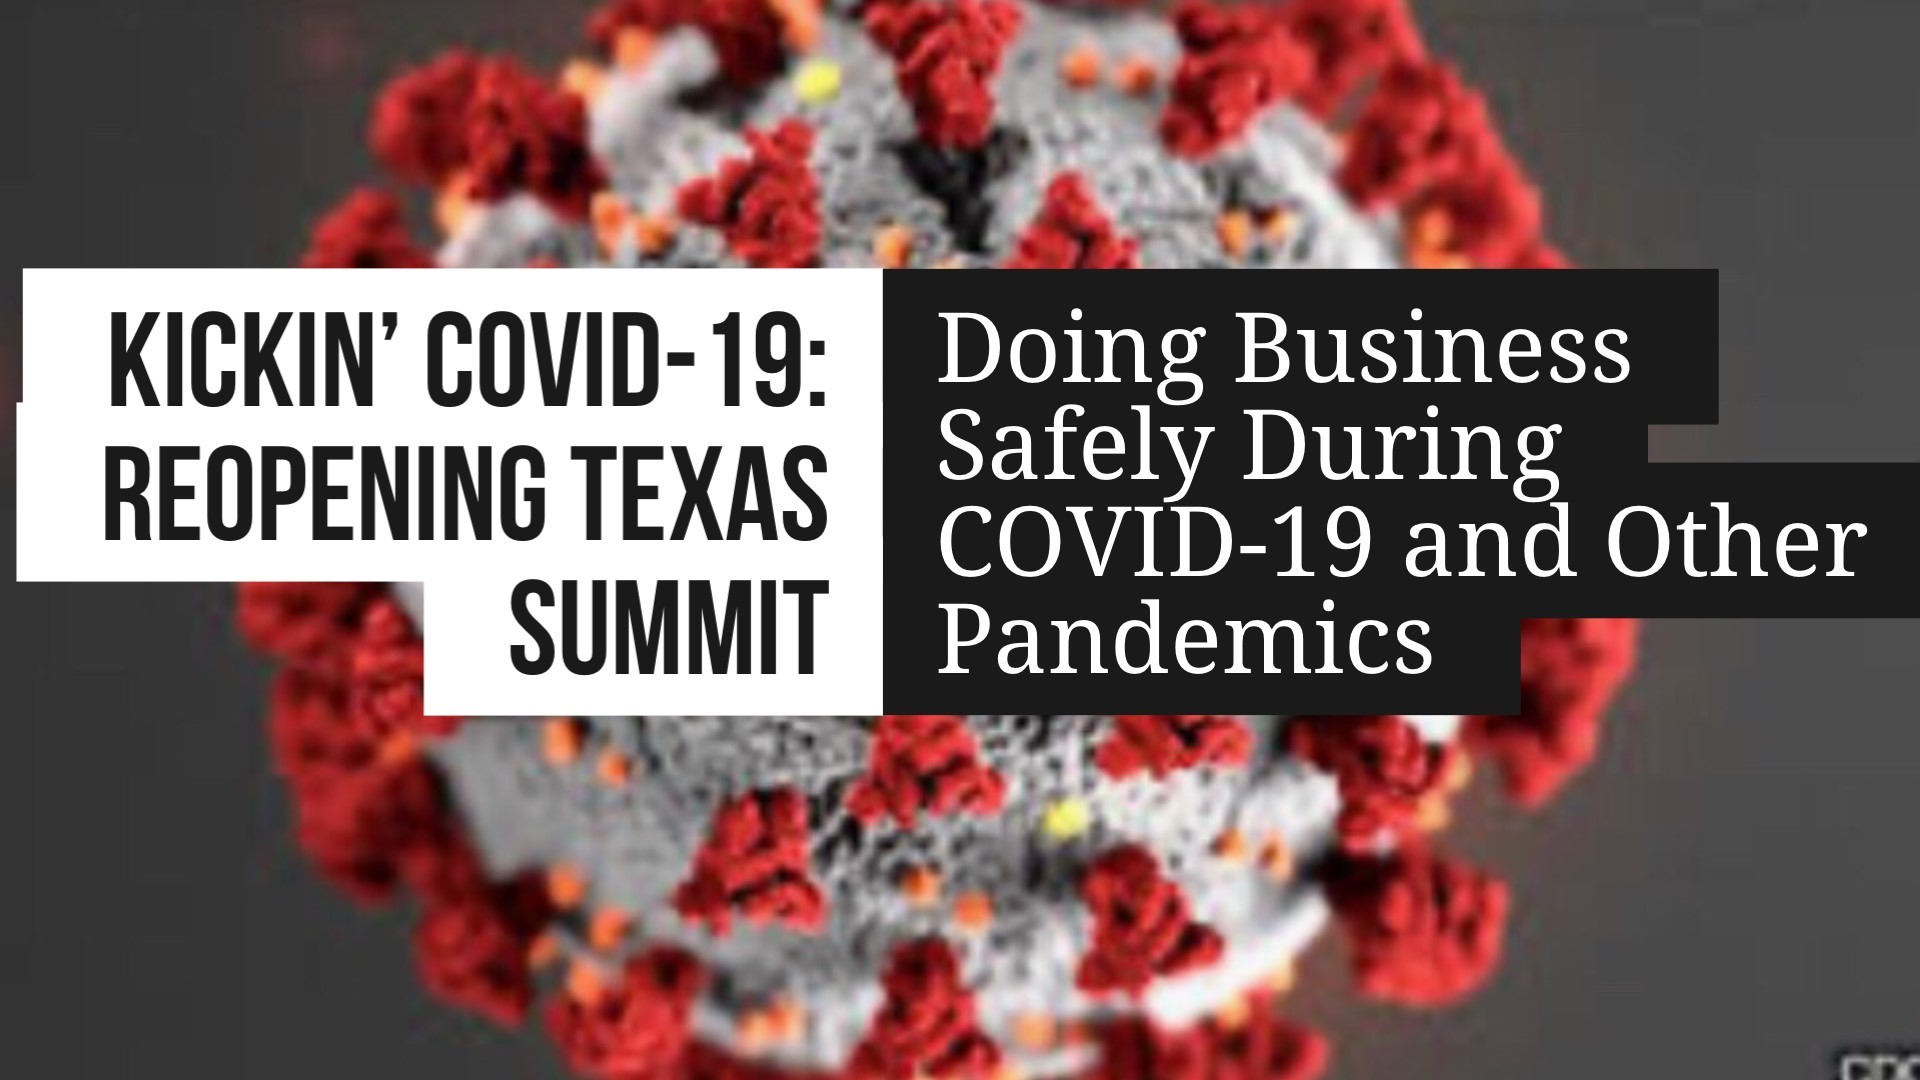 Participate In October 8 Free Kickin' COVID-19: Reopening Texas Summit On Facebook Live